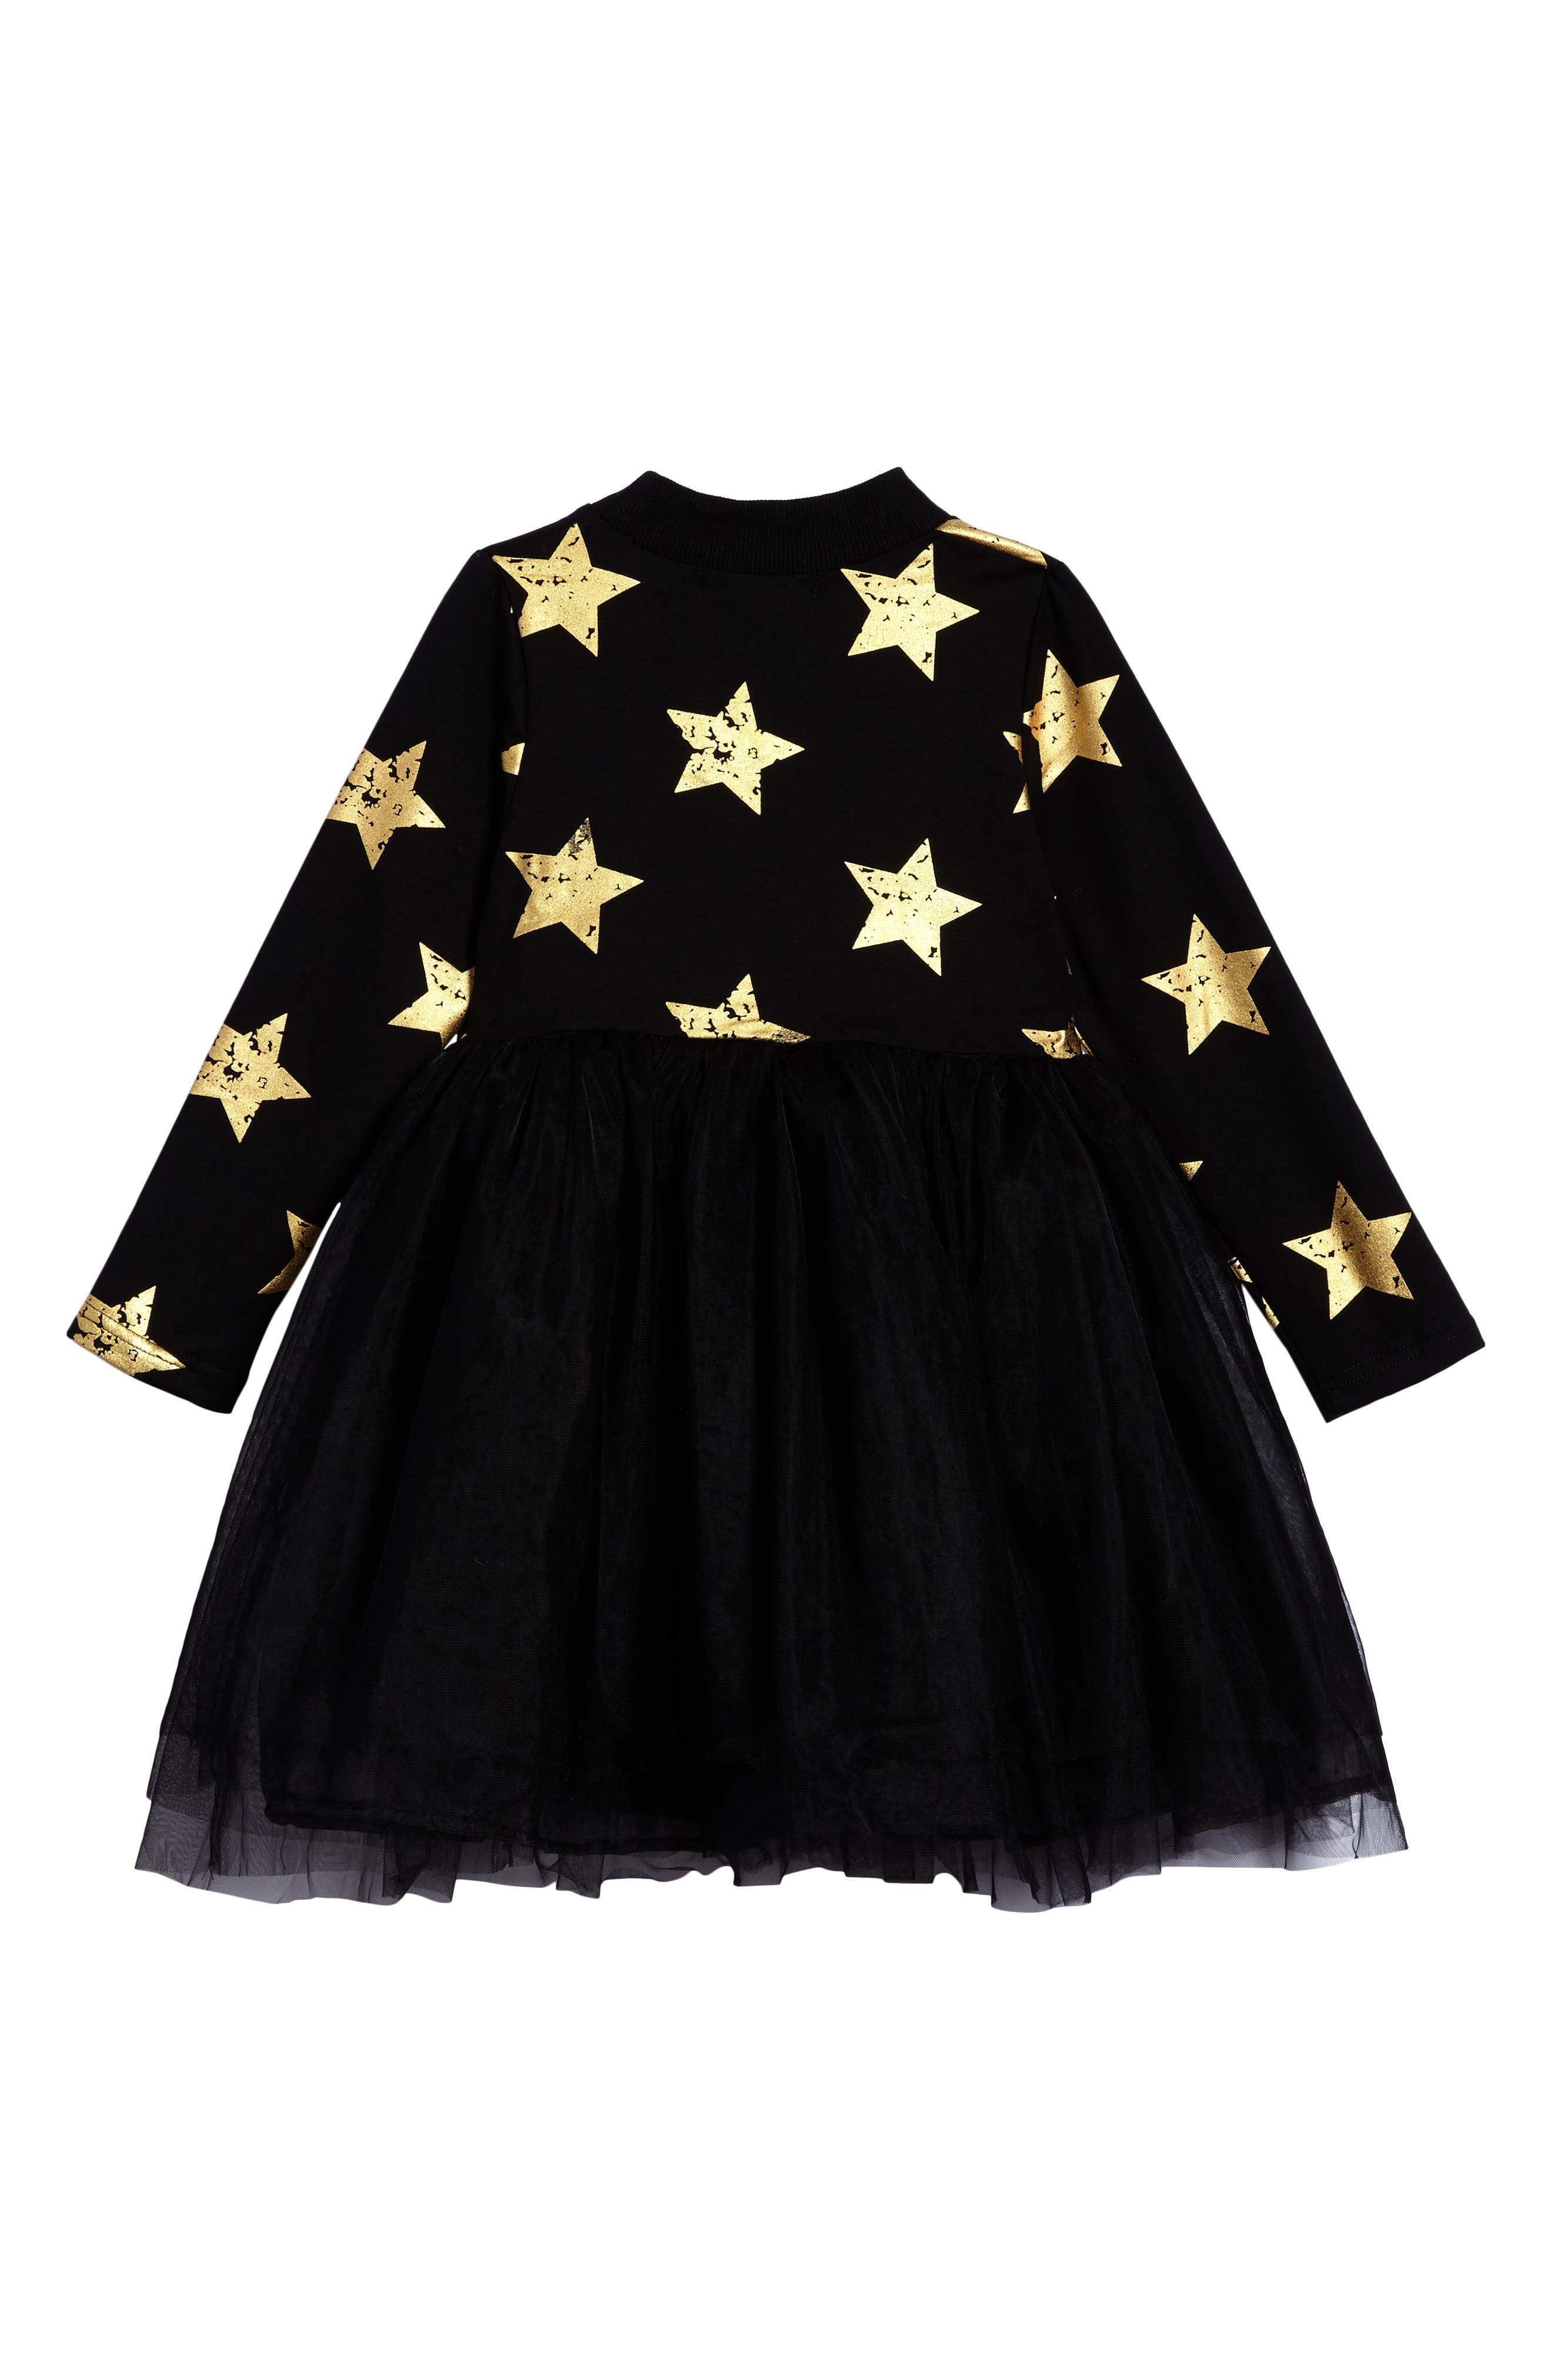 Star Tulle Party Dress,                             Alternate thumbnail 2, color,                             Black